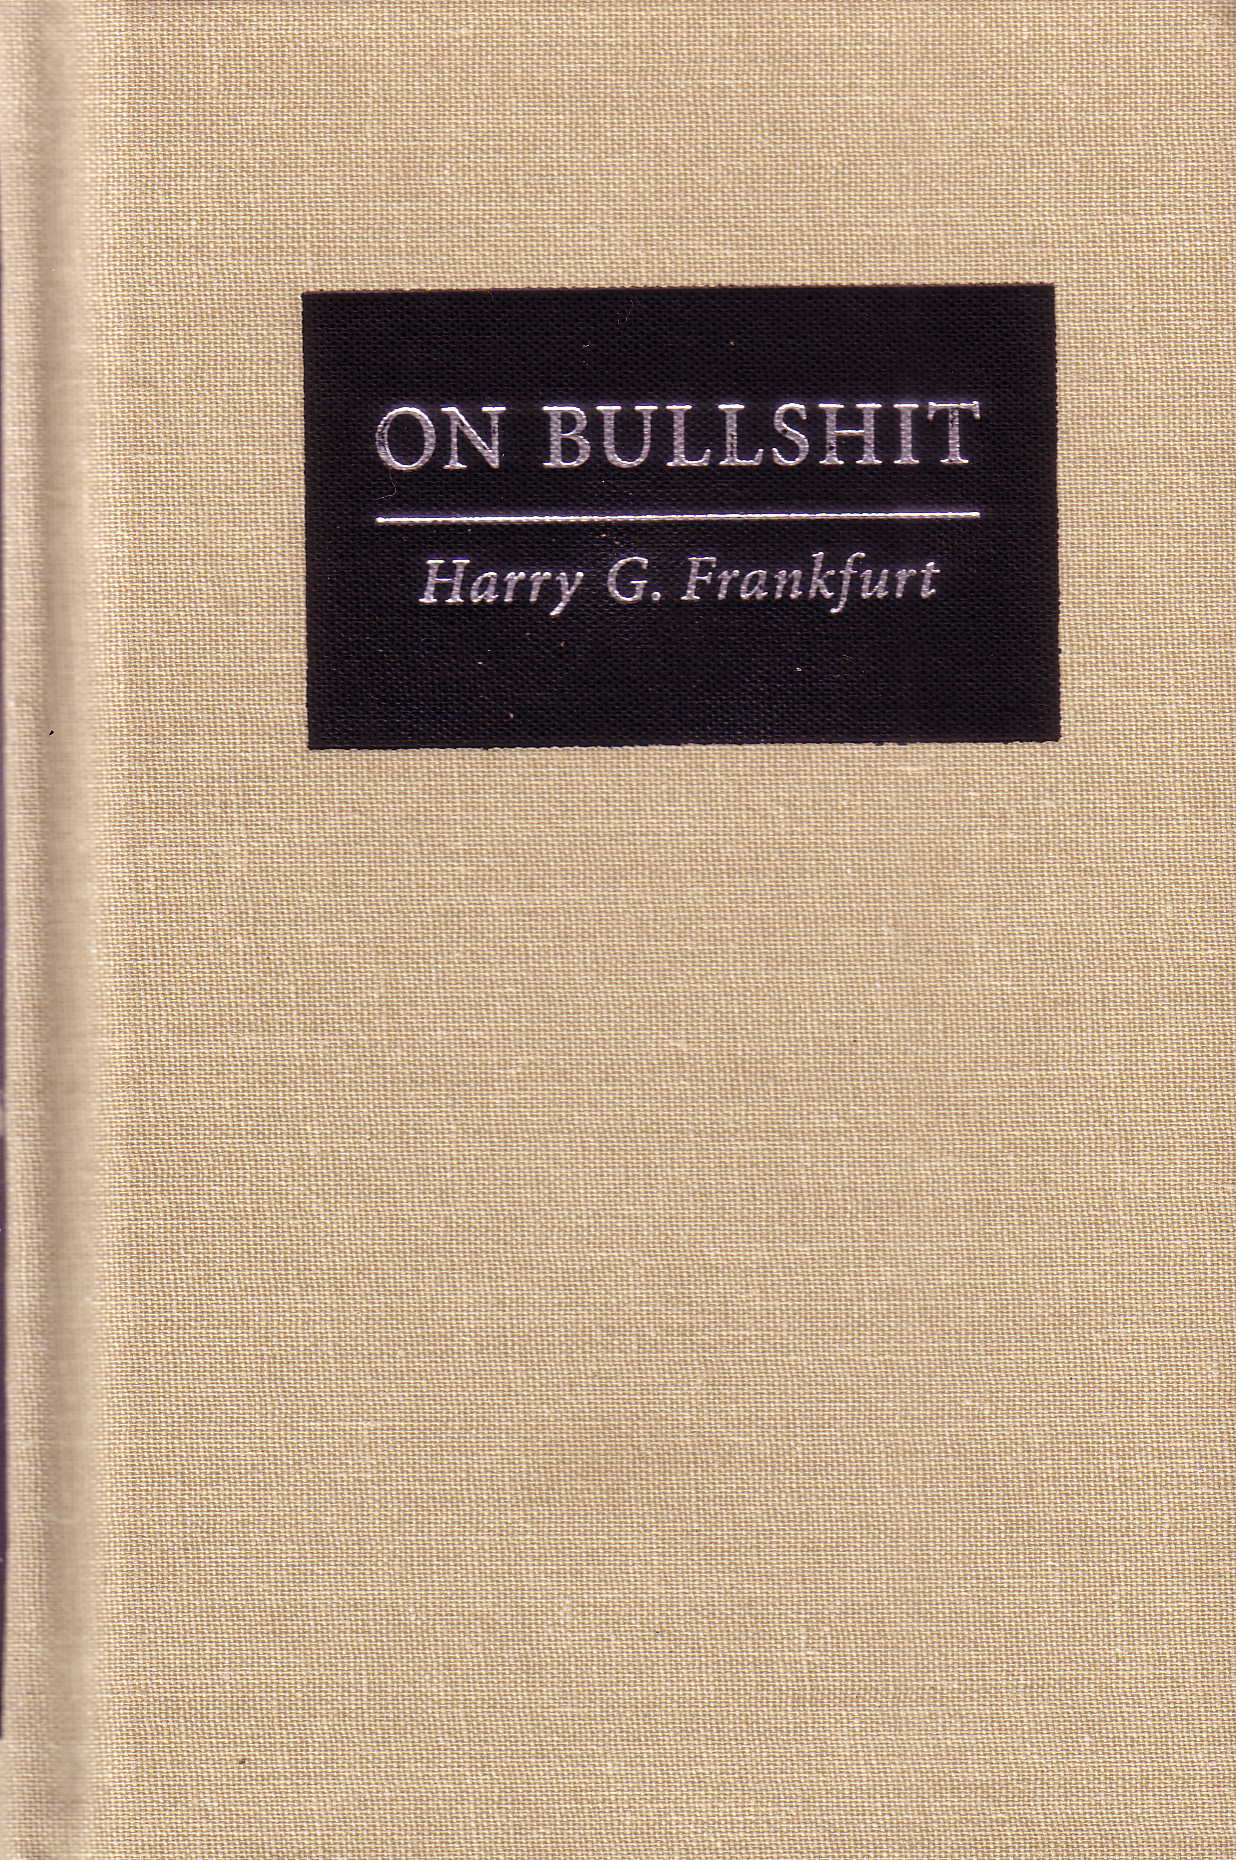 On Bullshit book cover